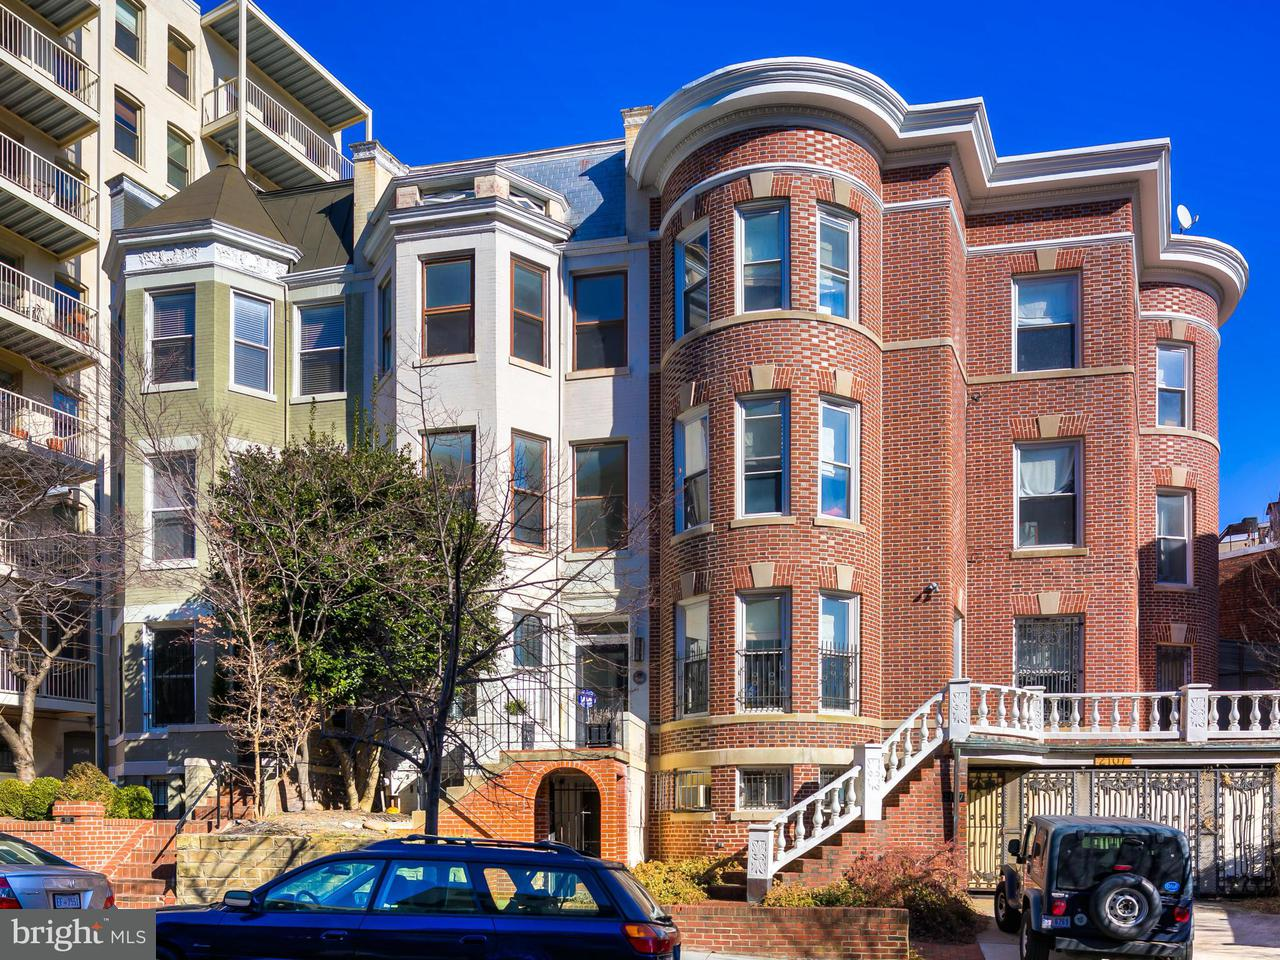 Townhouse for Sale at 2109 19th St Nw 2109 19th St Nw Washington, District Of Columbia 20009 United States